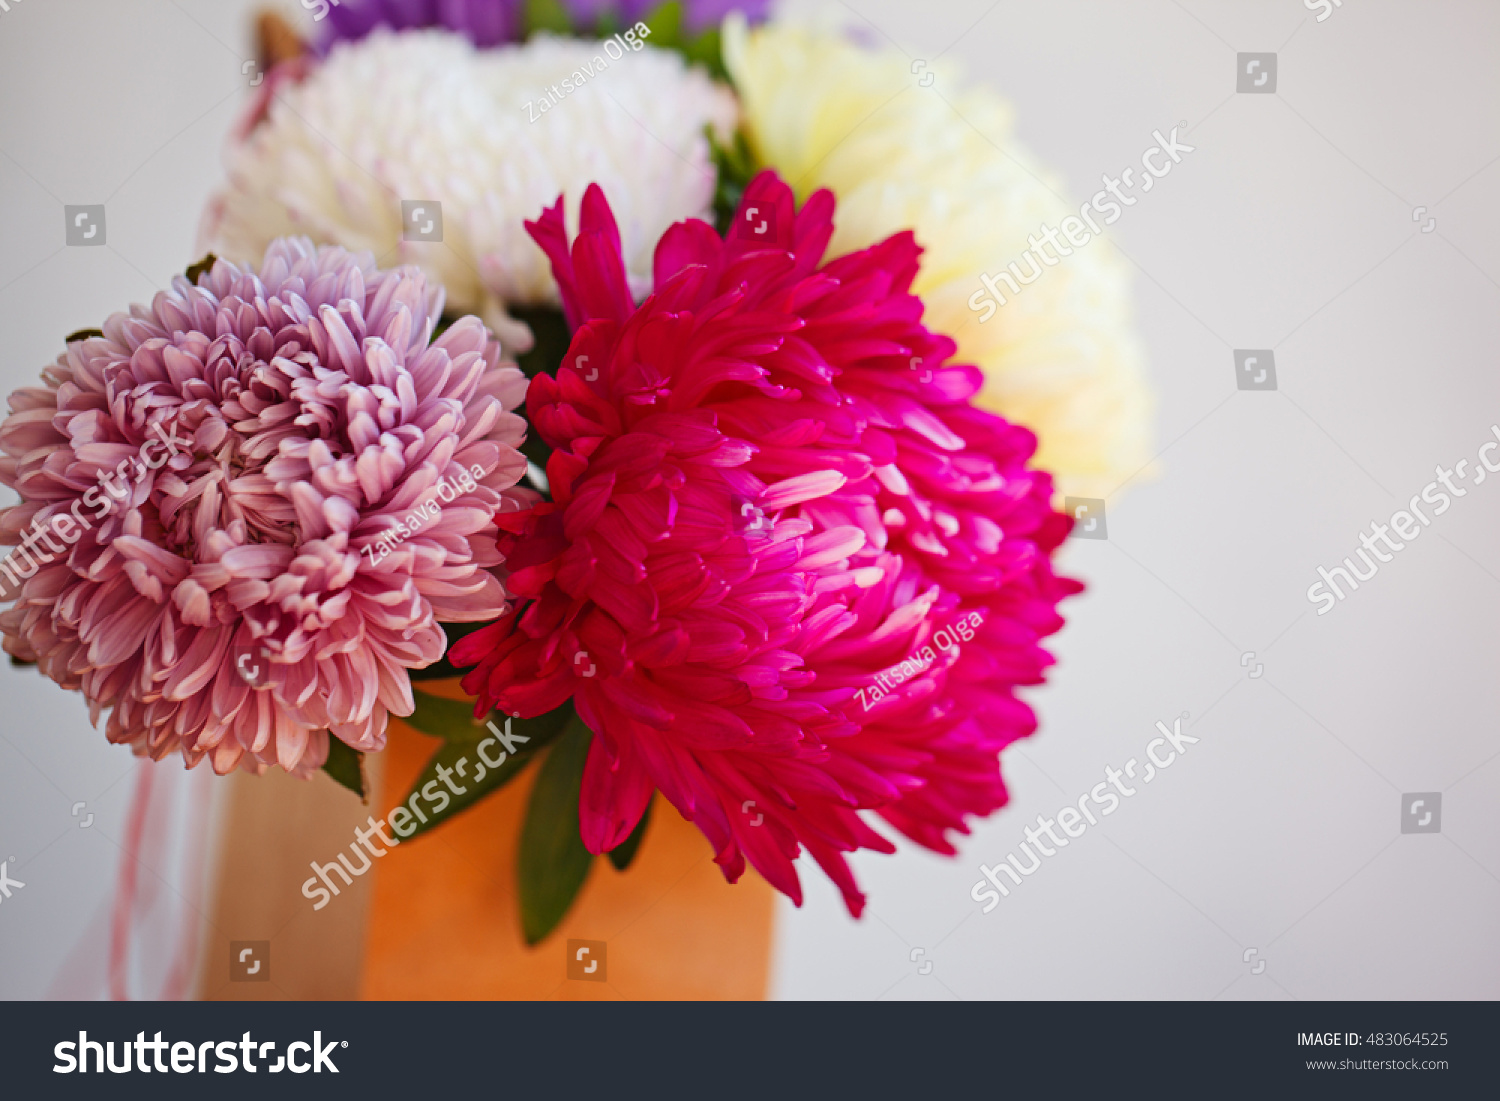 Royalty Free Beautiful Colorful Aster Flower Bouquet 483064525